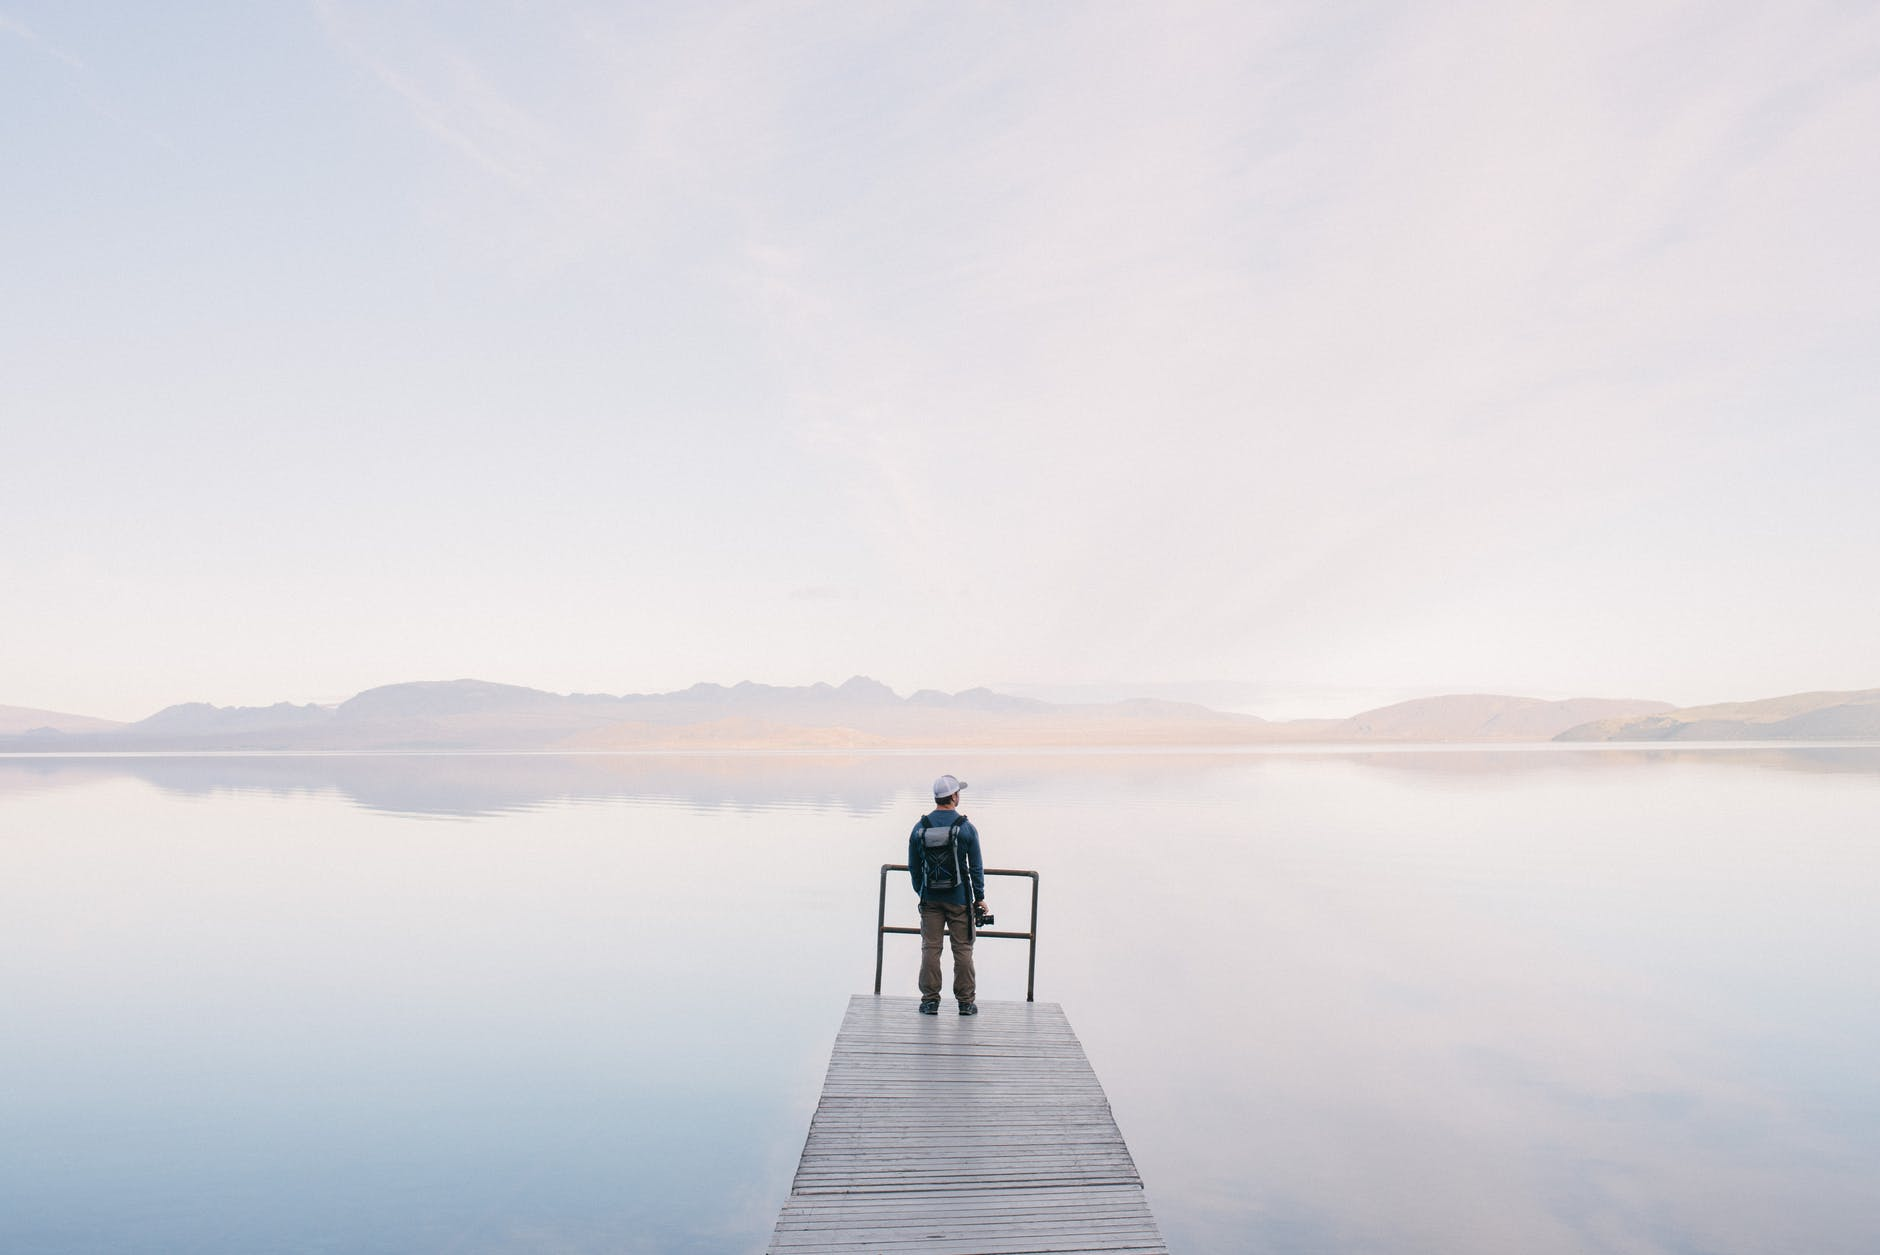 man wearing jacket standing on wooden docks leading to body of water